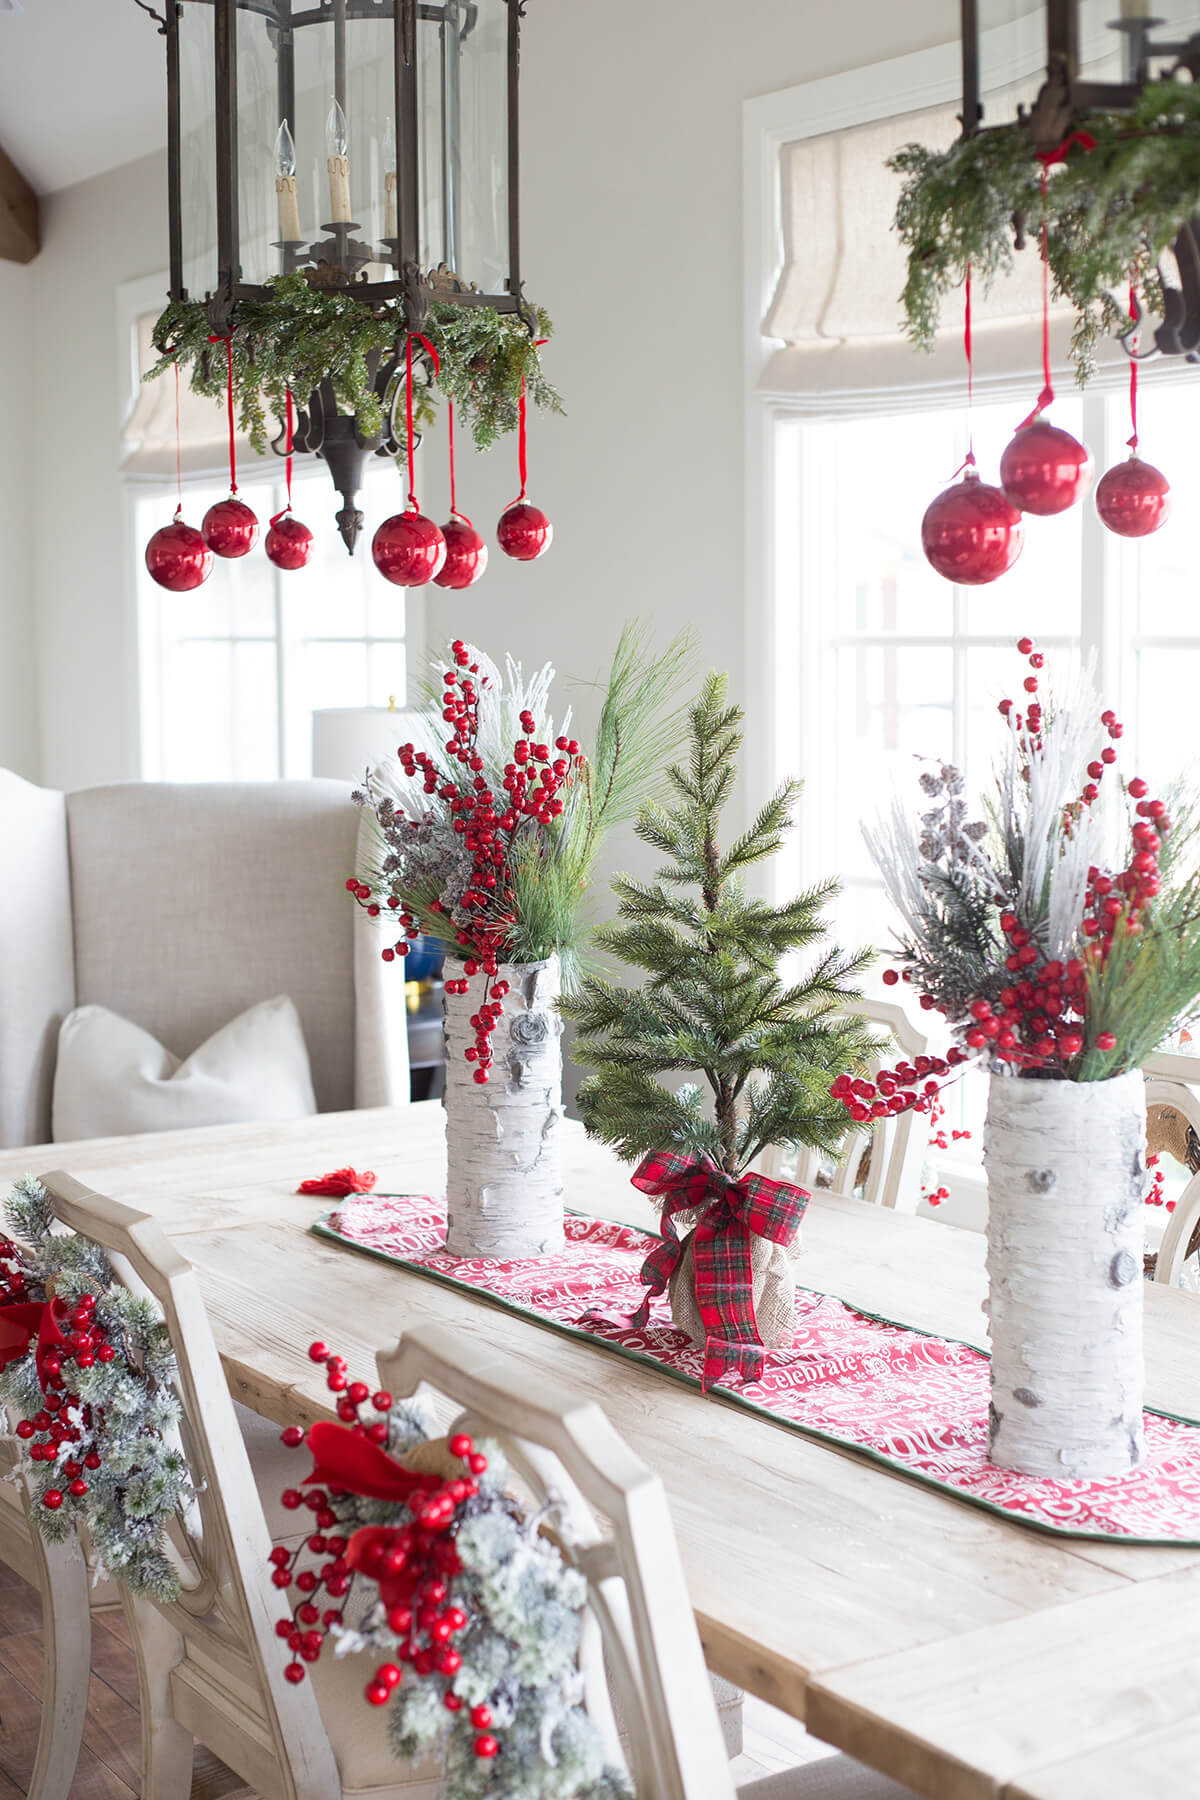 1 berries galore and ornament chandeliers - Different Christmas Decorations Ideas